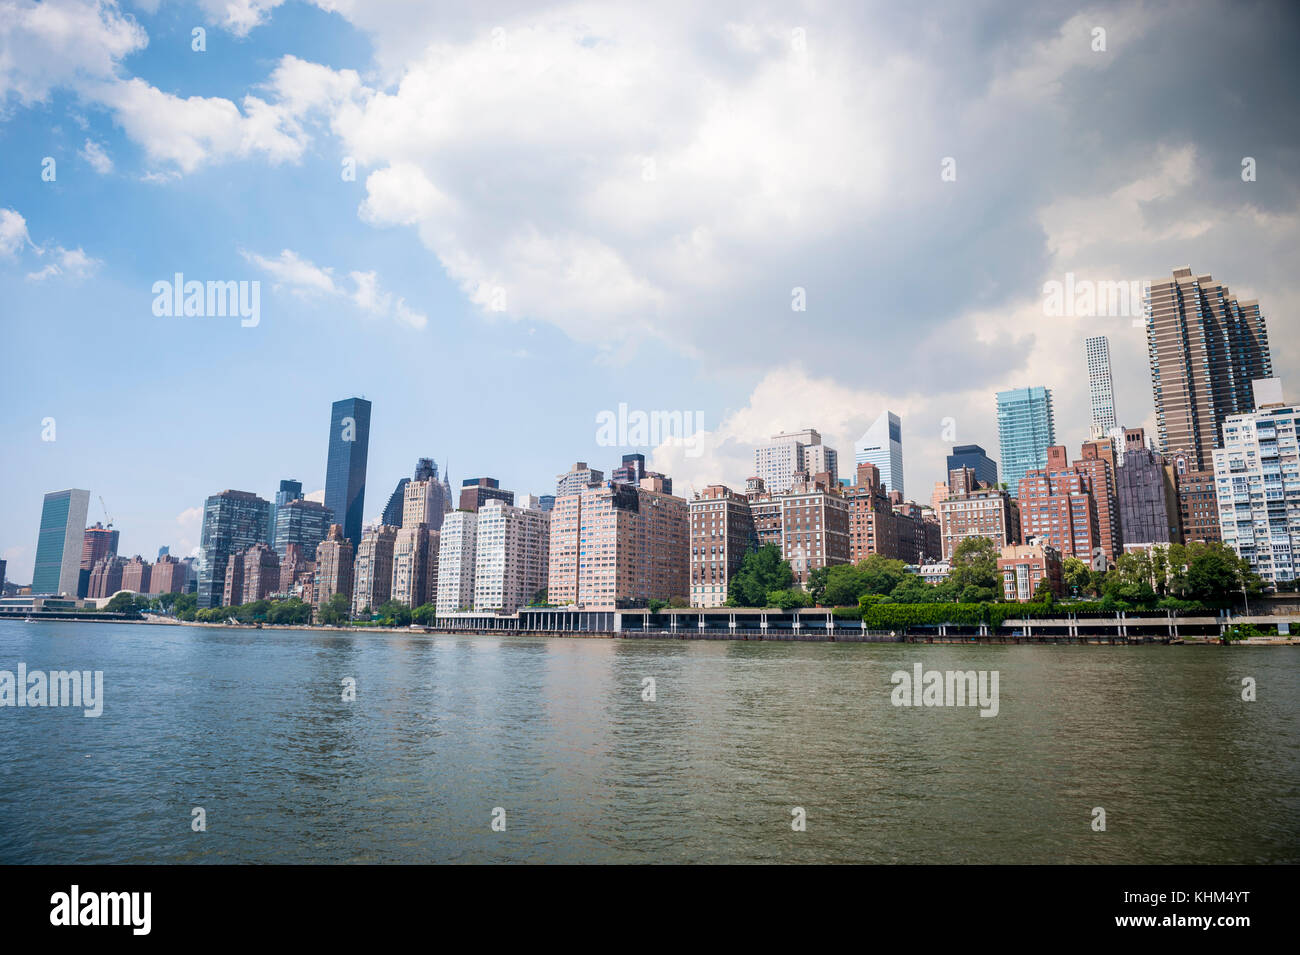 New York City skyline viewed across the East River from Roosevelt Island waterfront. - Stock Image